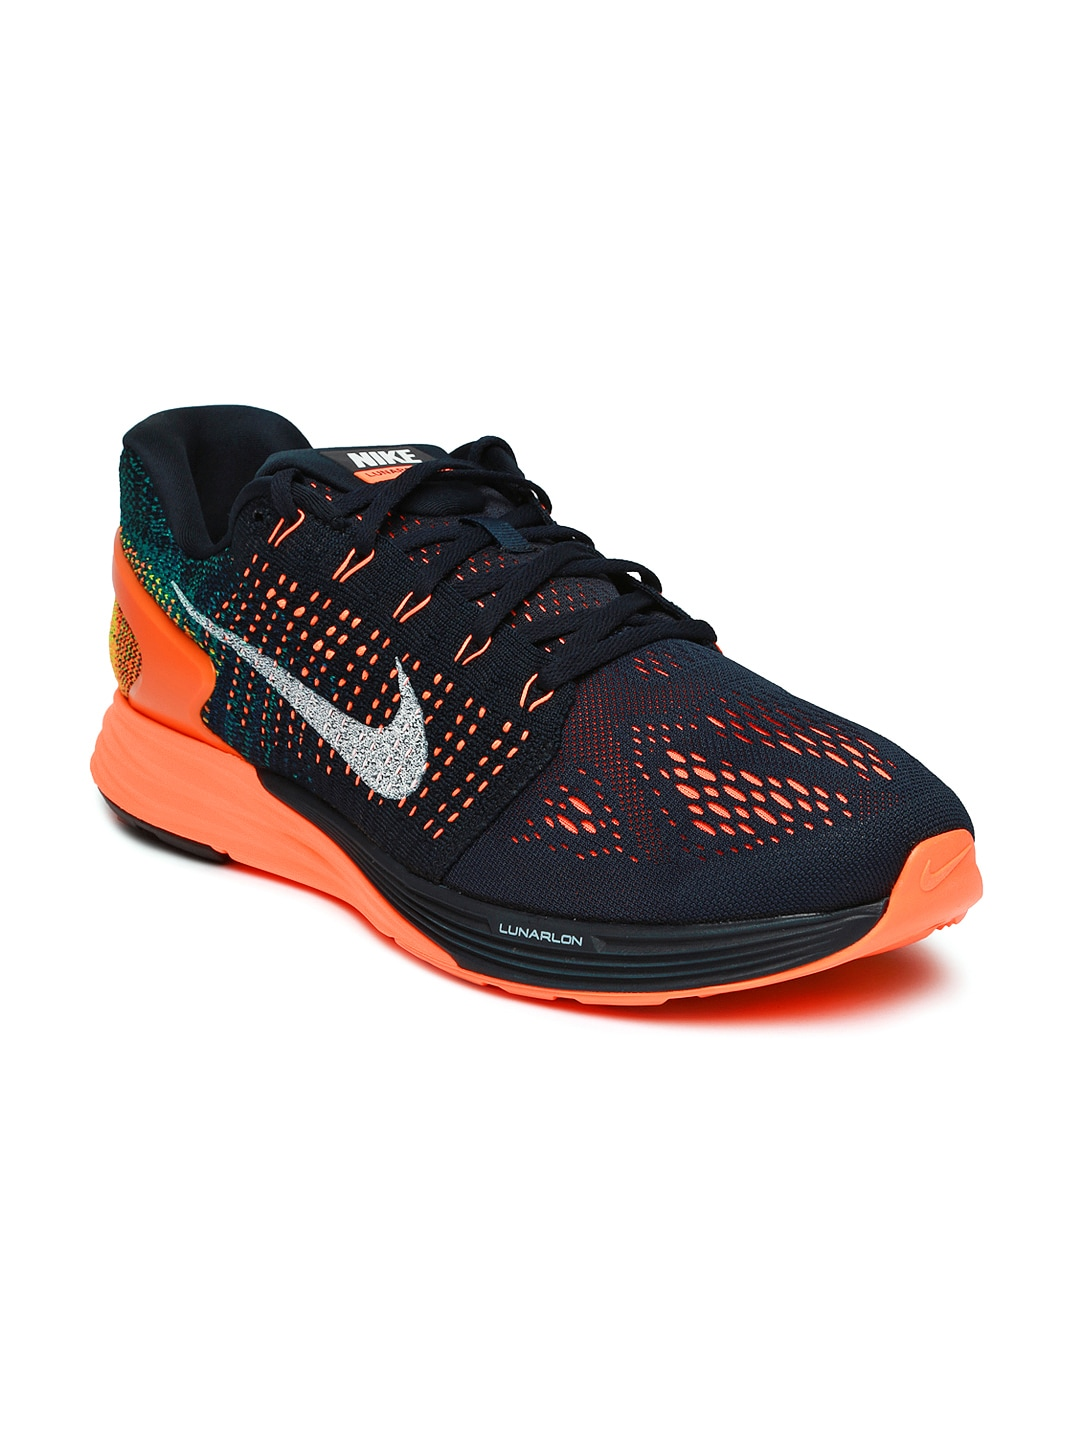 low priced 8e8c3 3fece Nike 747355-400 Men Navy Lunarglide 7 Running Shoes ...